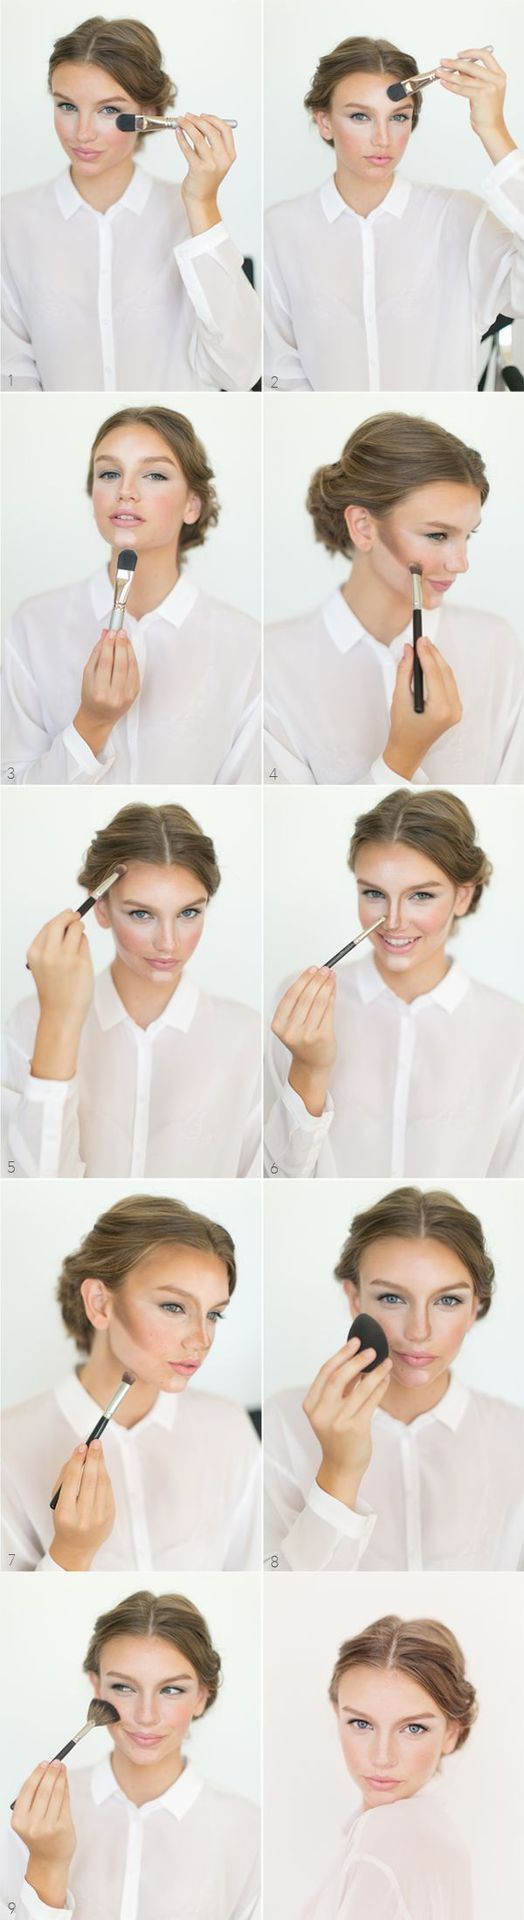 Exactly how To blend my makeup!! Perfect tutorial for beginners!:) -S